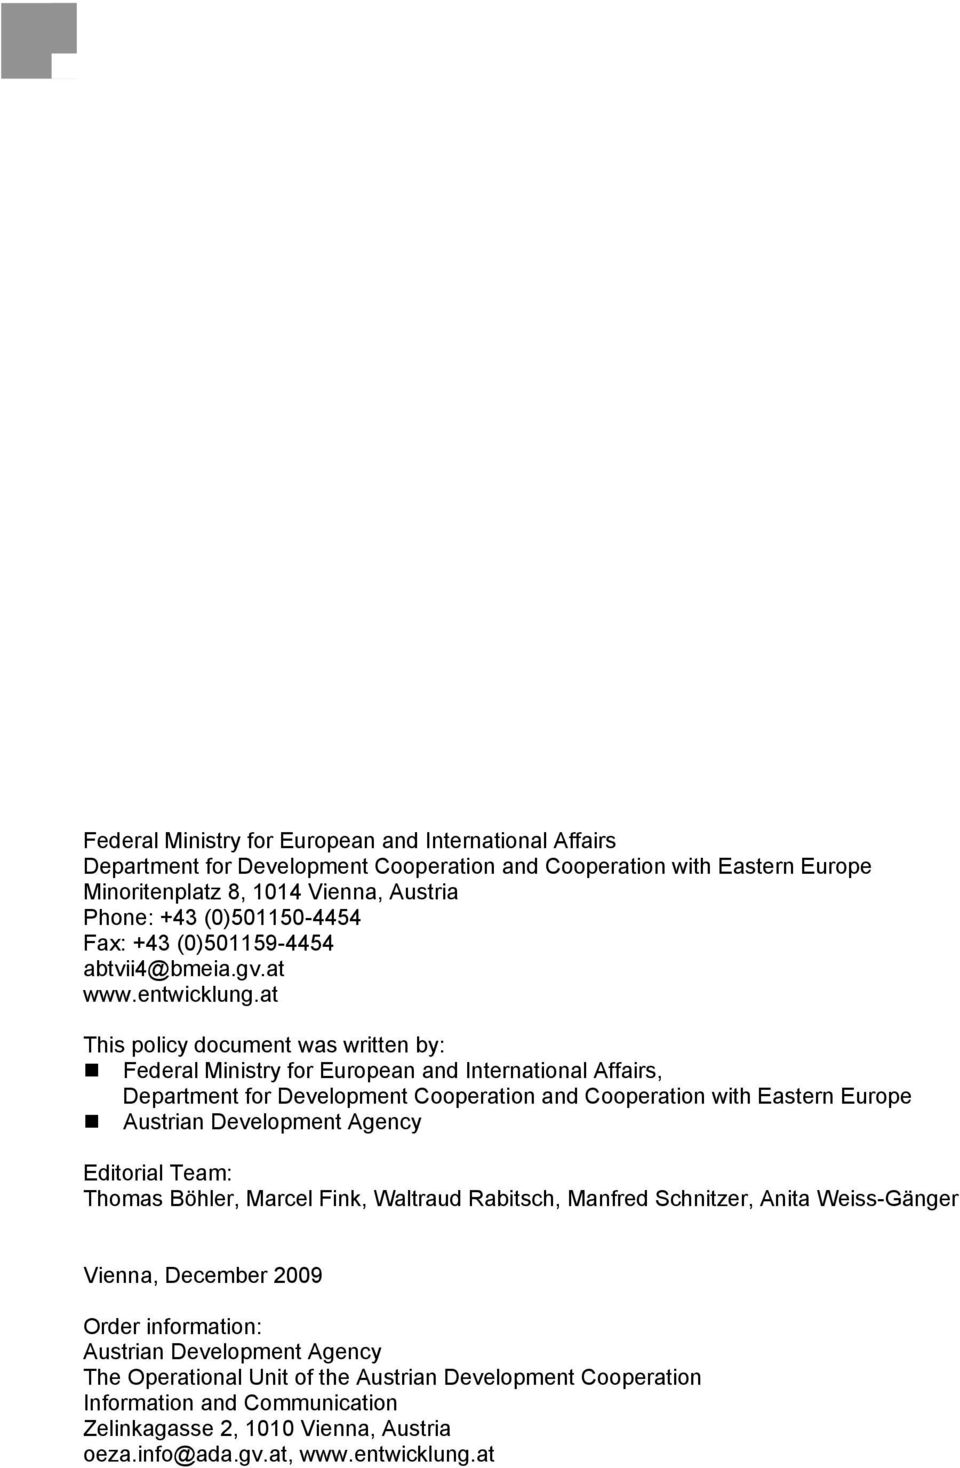 at This policy document was written by: Federal Ministry for European and International Affairs, Department for Development Cooperation and Cooperation with Eastern Europe Austrian Development